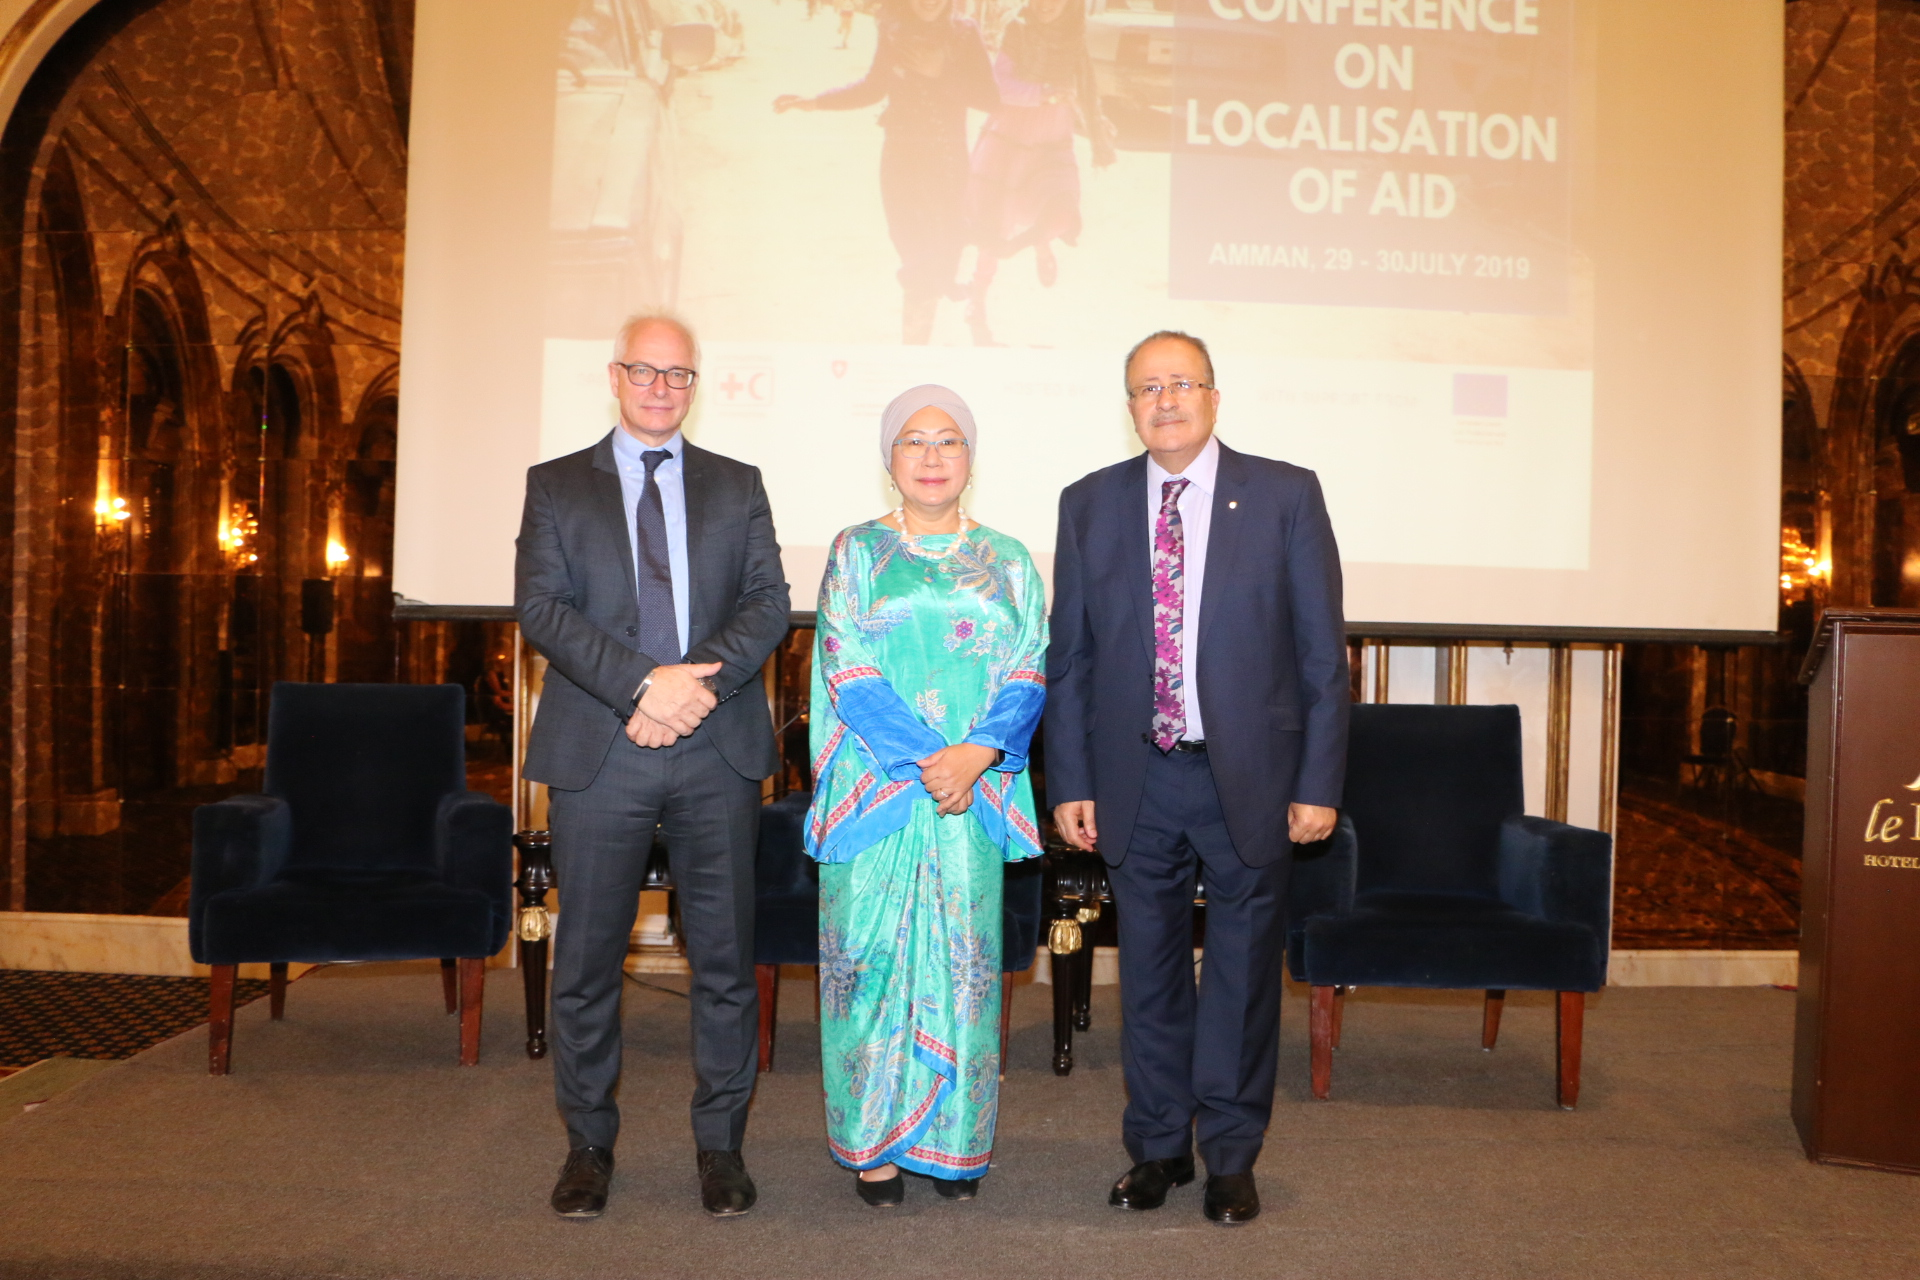 Middle East Regional Conference on Localisation - Amman, 29-30 July 2019 - 4